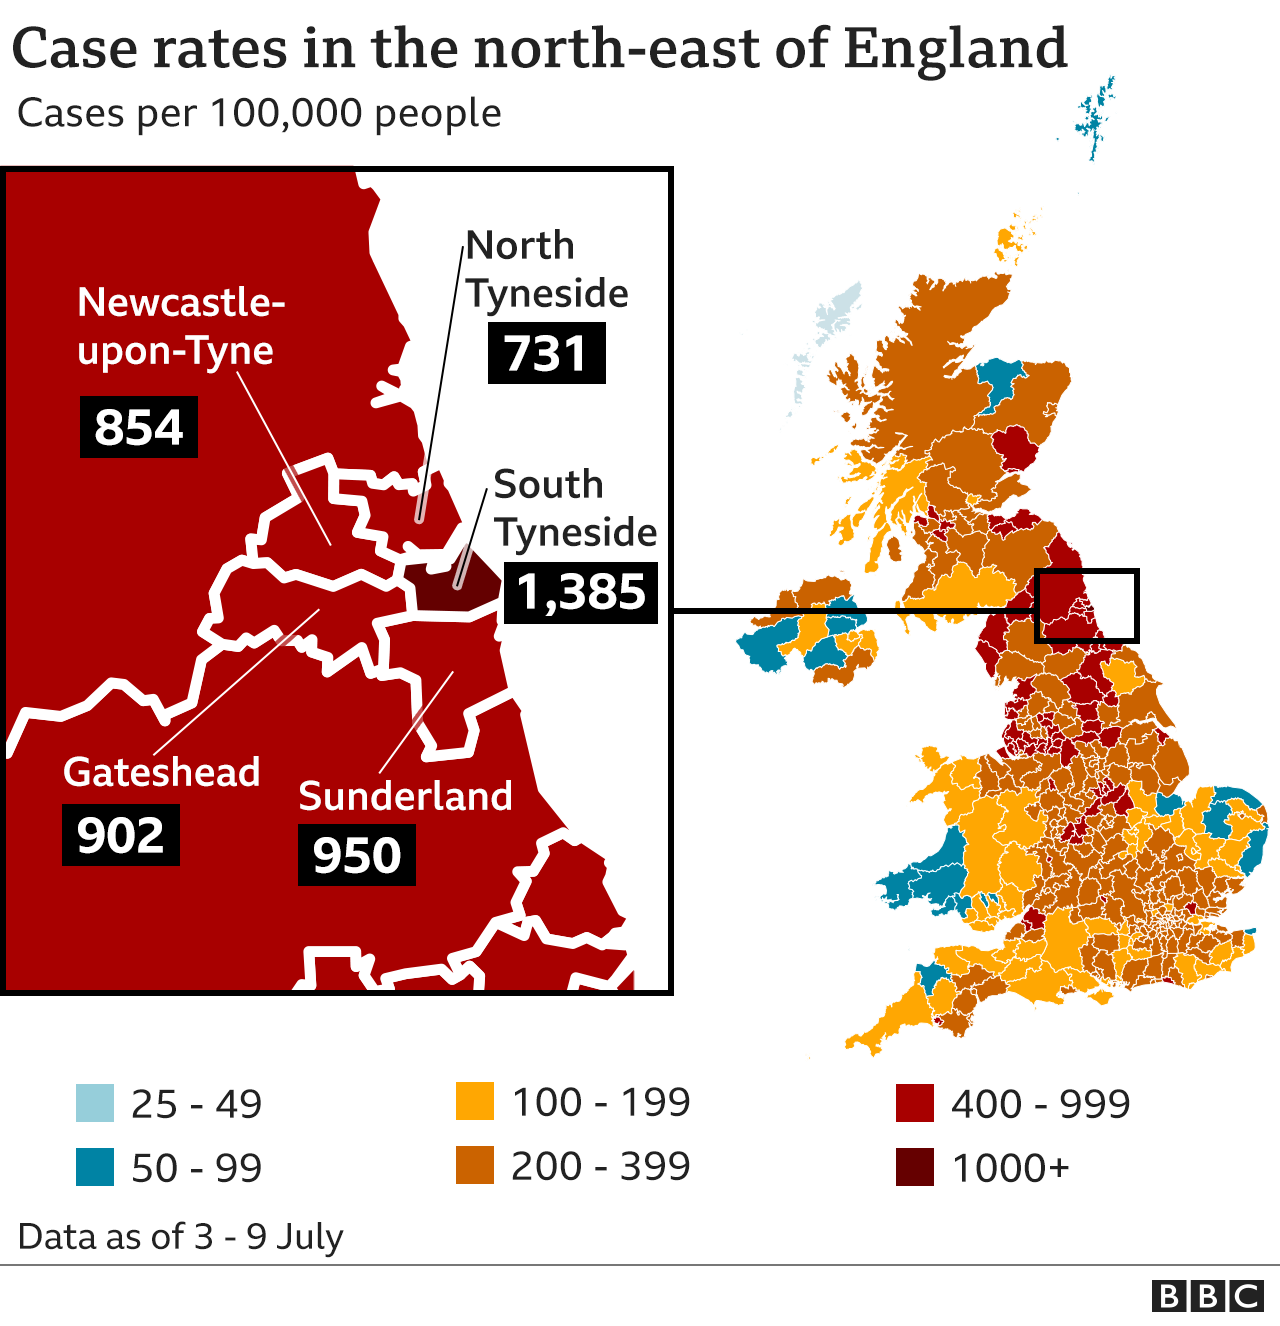 Map showing case rates in the north-east